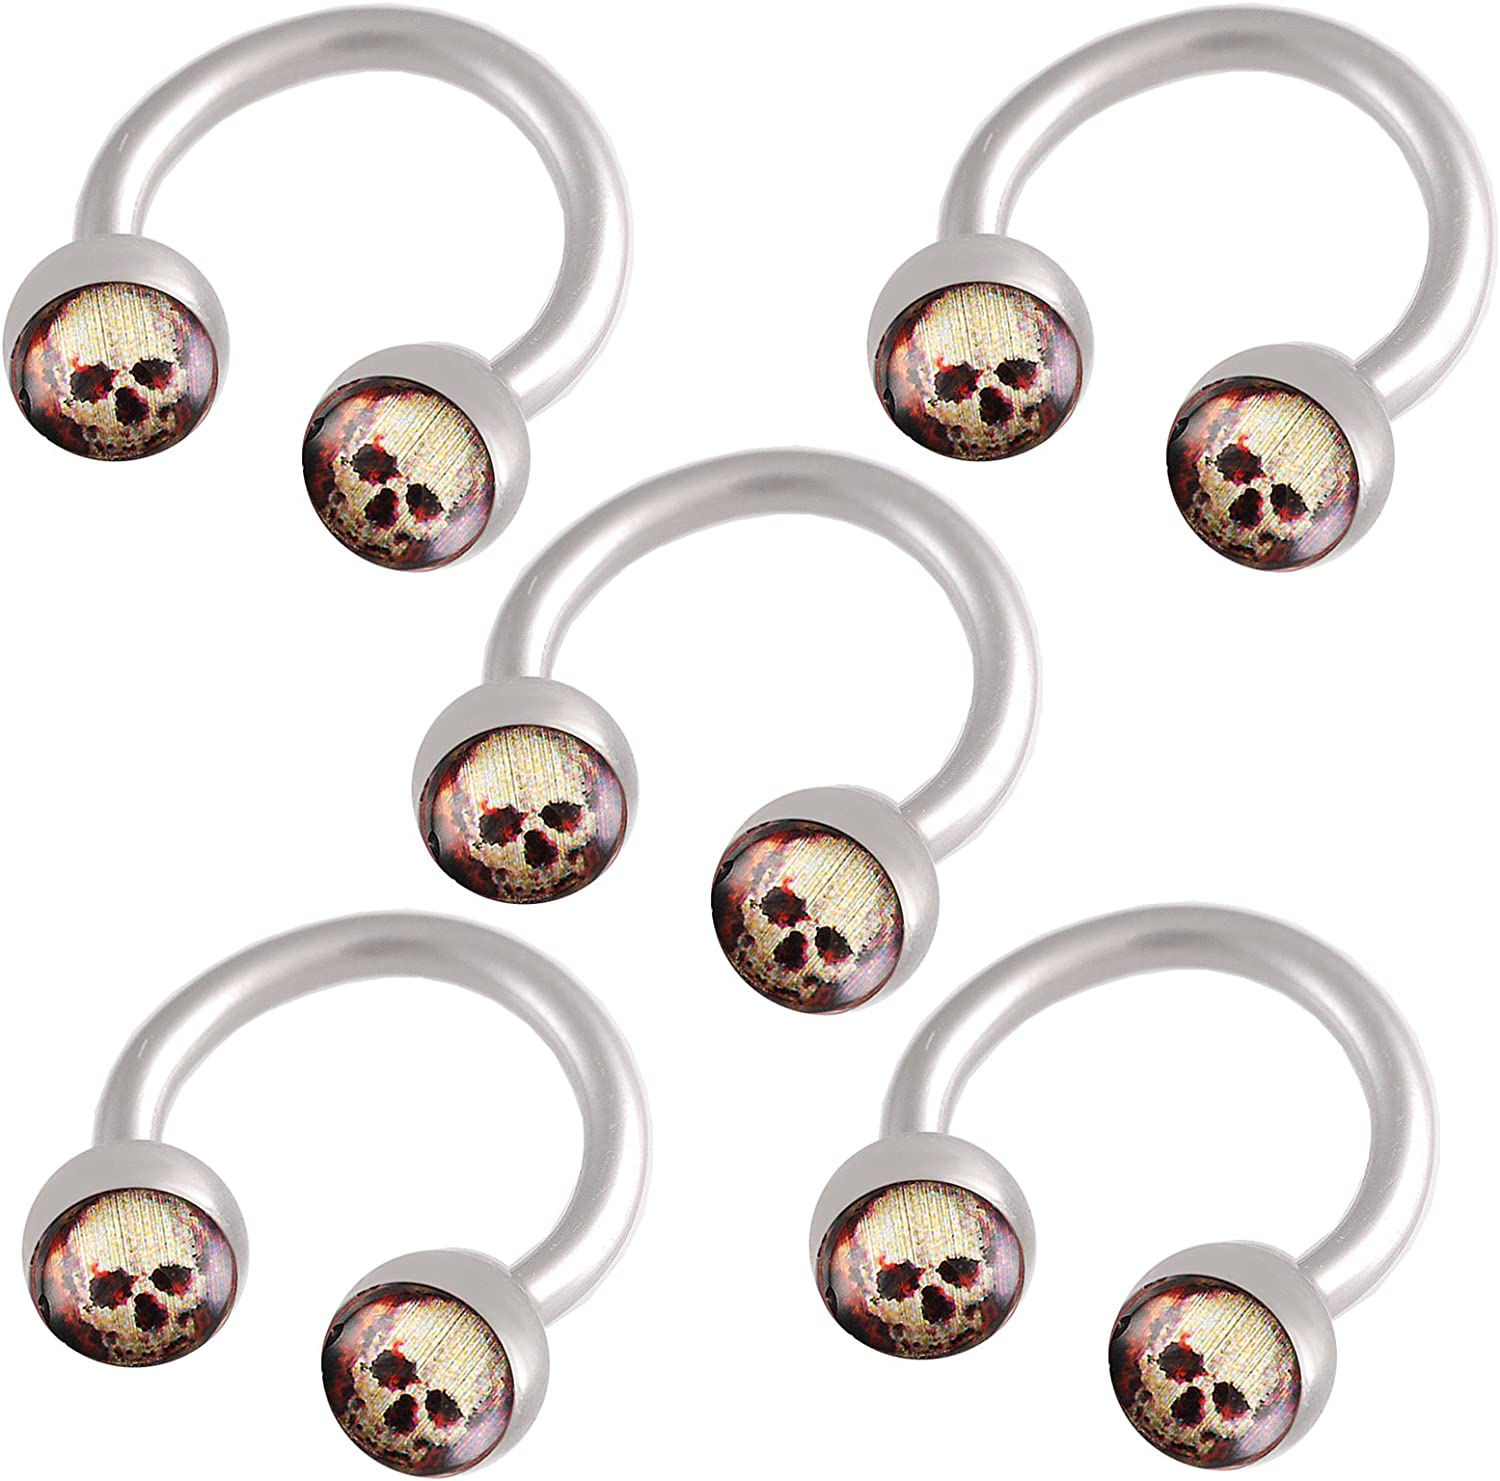 bodyjewellery 16g 16 gauge 1.2mm 5//16 8mm steel circular barbell 4mm skull Logo ring lip ear tragus eyebrow AWCM 5 PCS